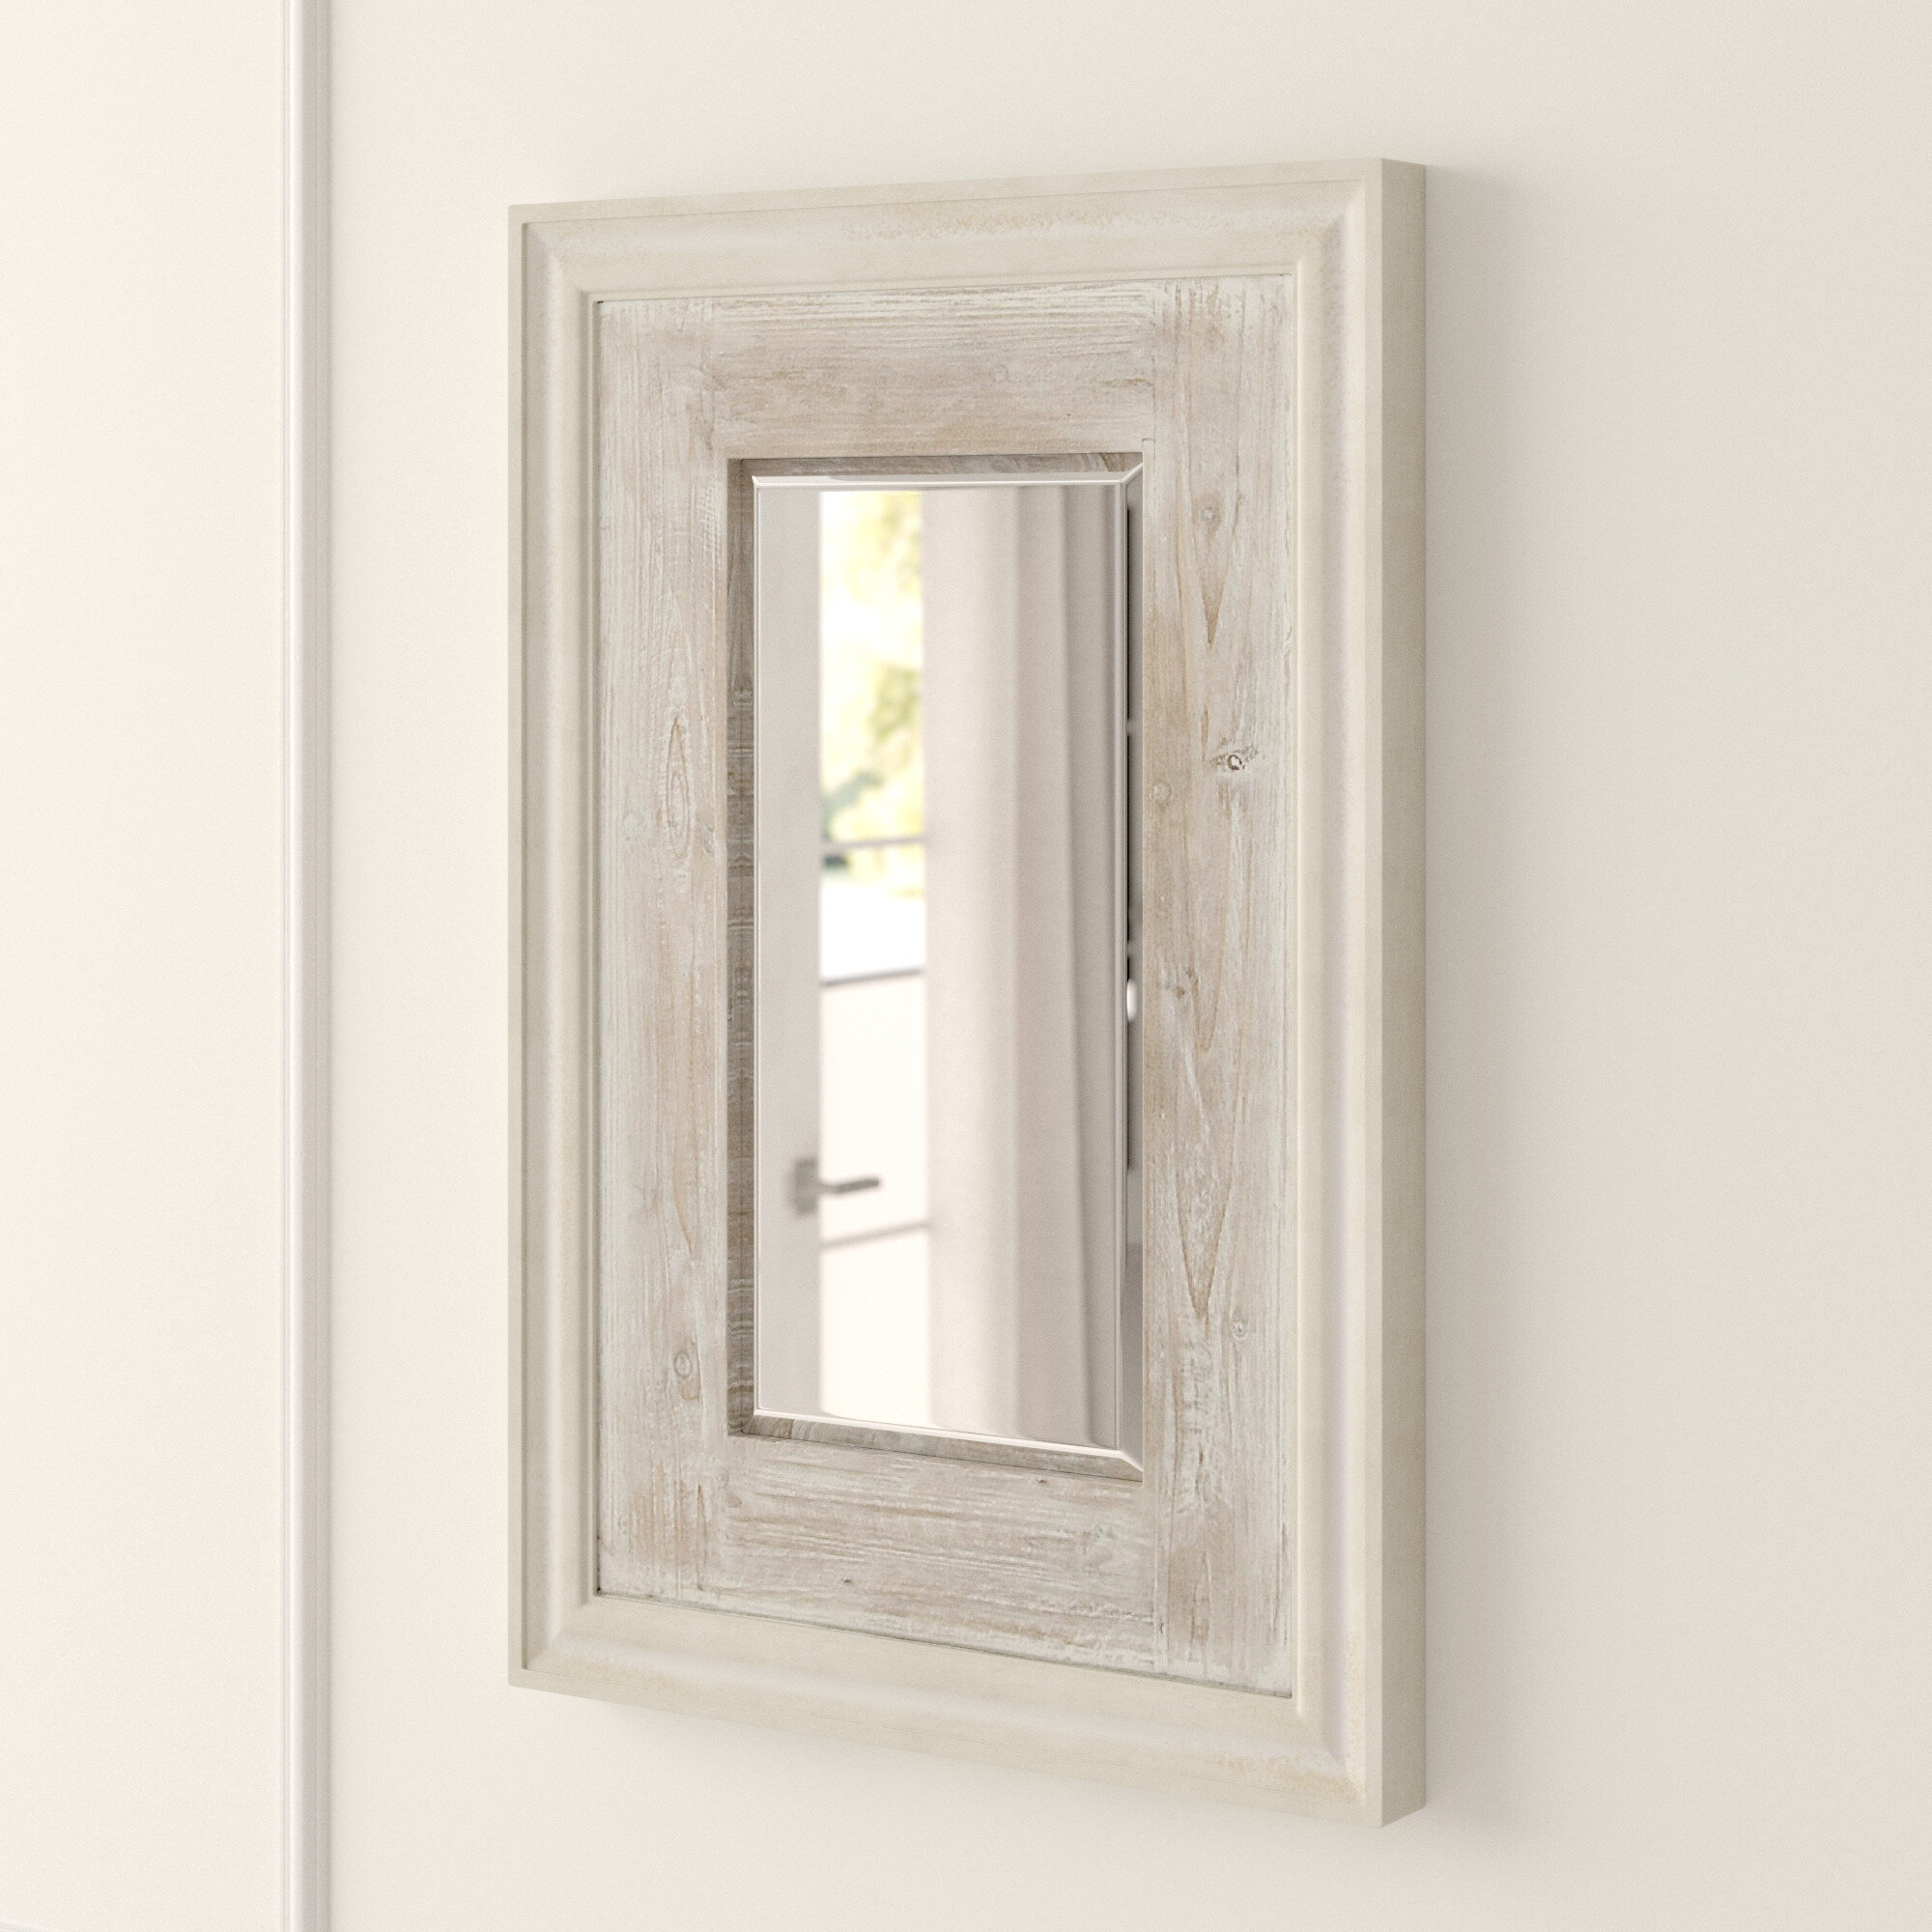 Argent Traditional Beveled Distressed Accent Mirror Reviews Joss Main